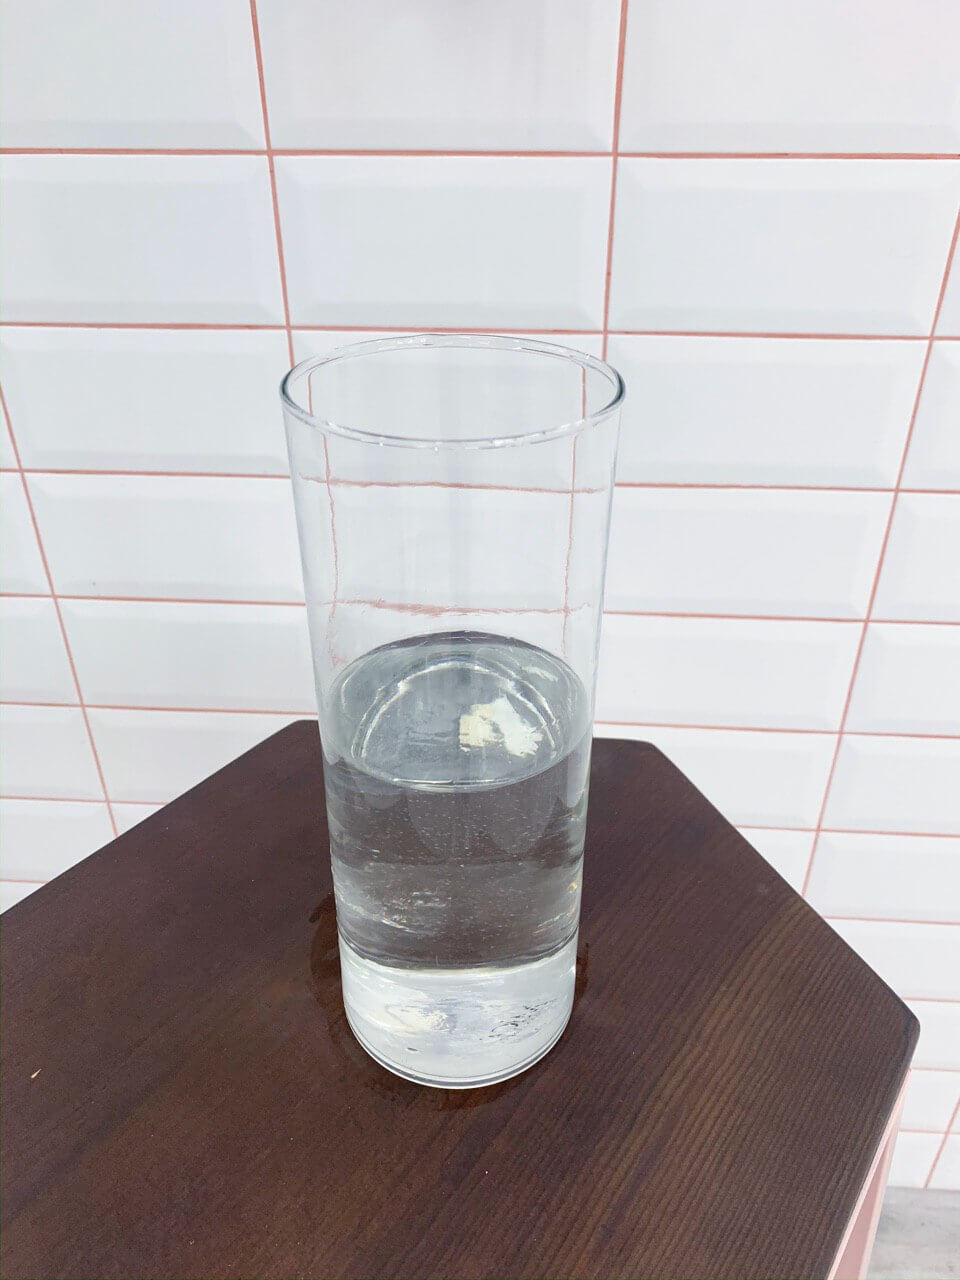 Vase with fresh water